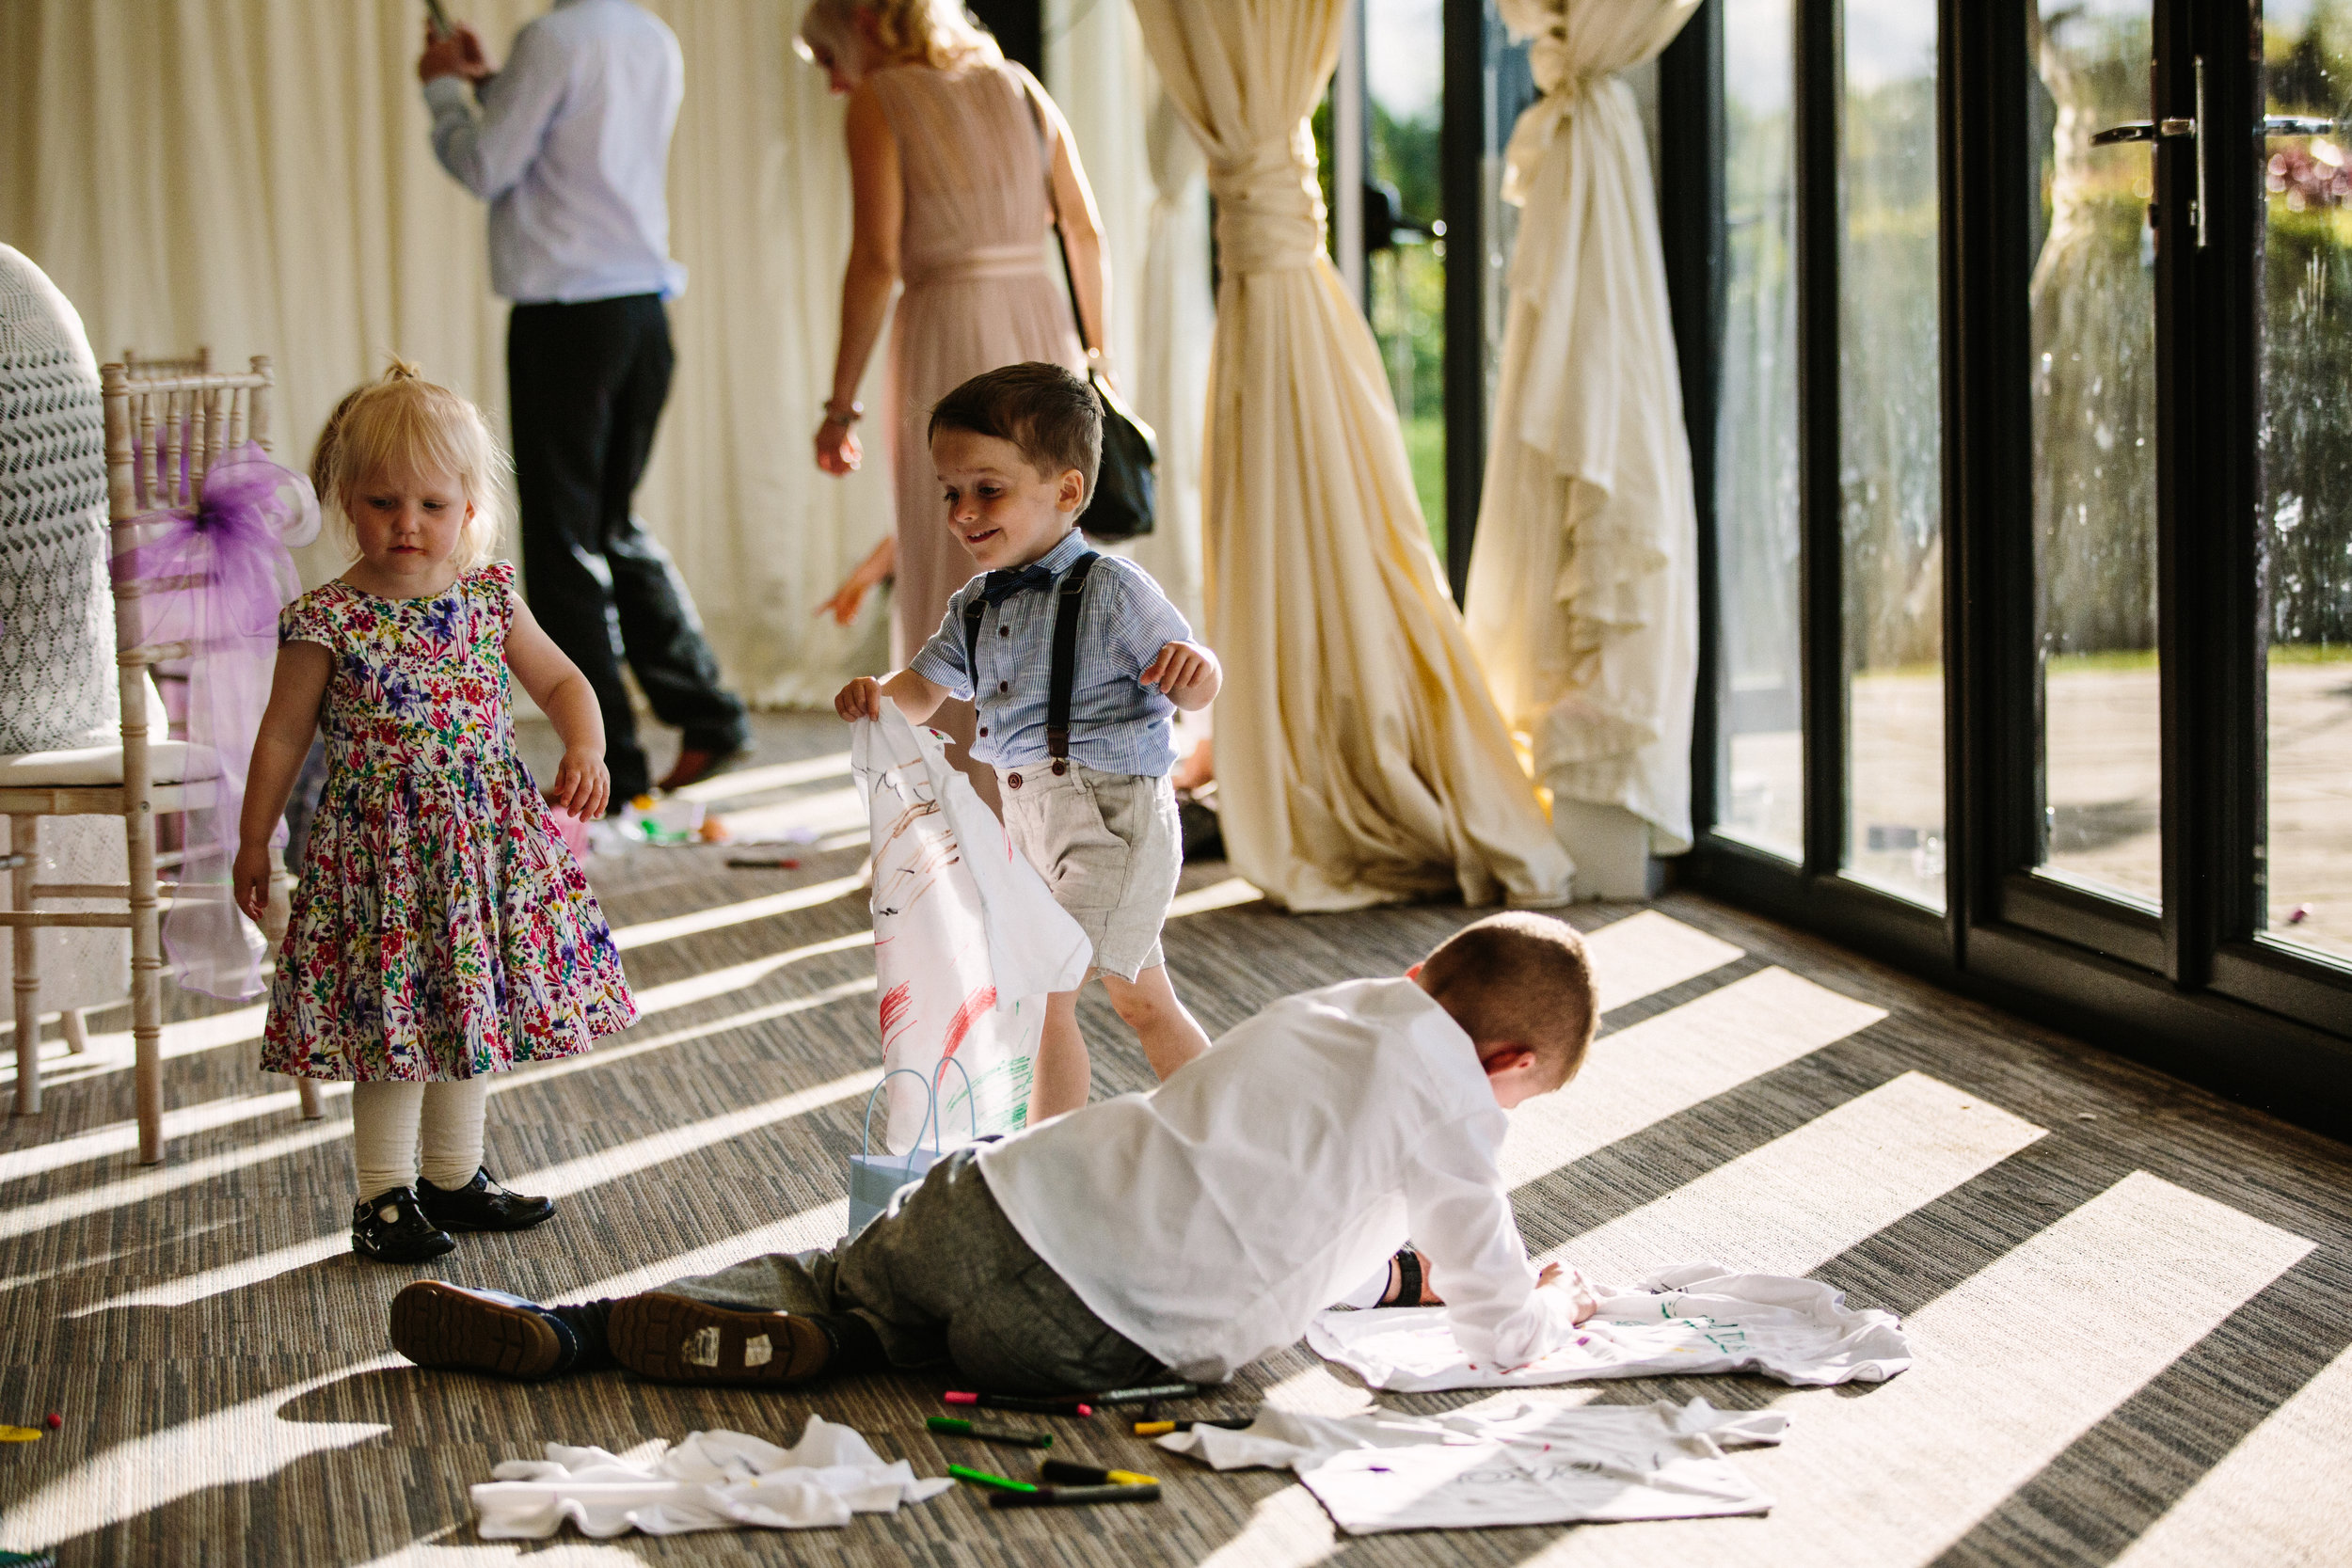 cotswalds-chipping-norton-oxfordshire-london-wedding-photography-reception-kids-37